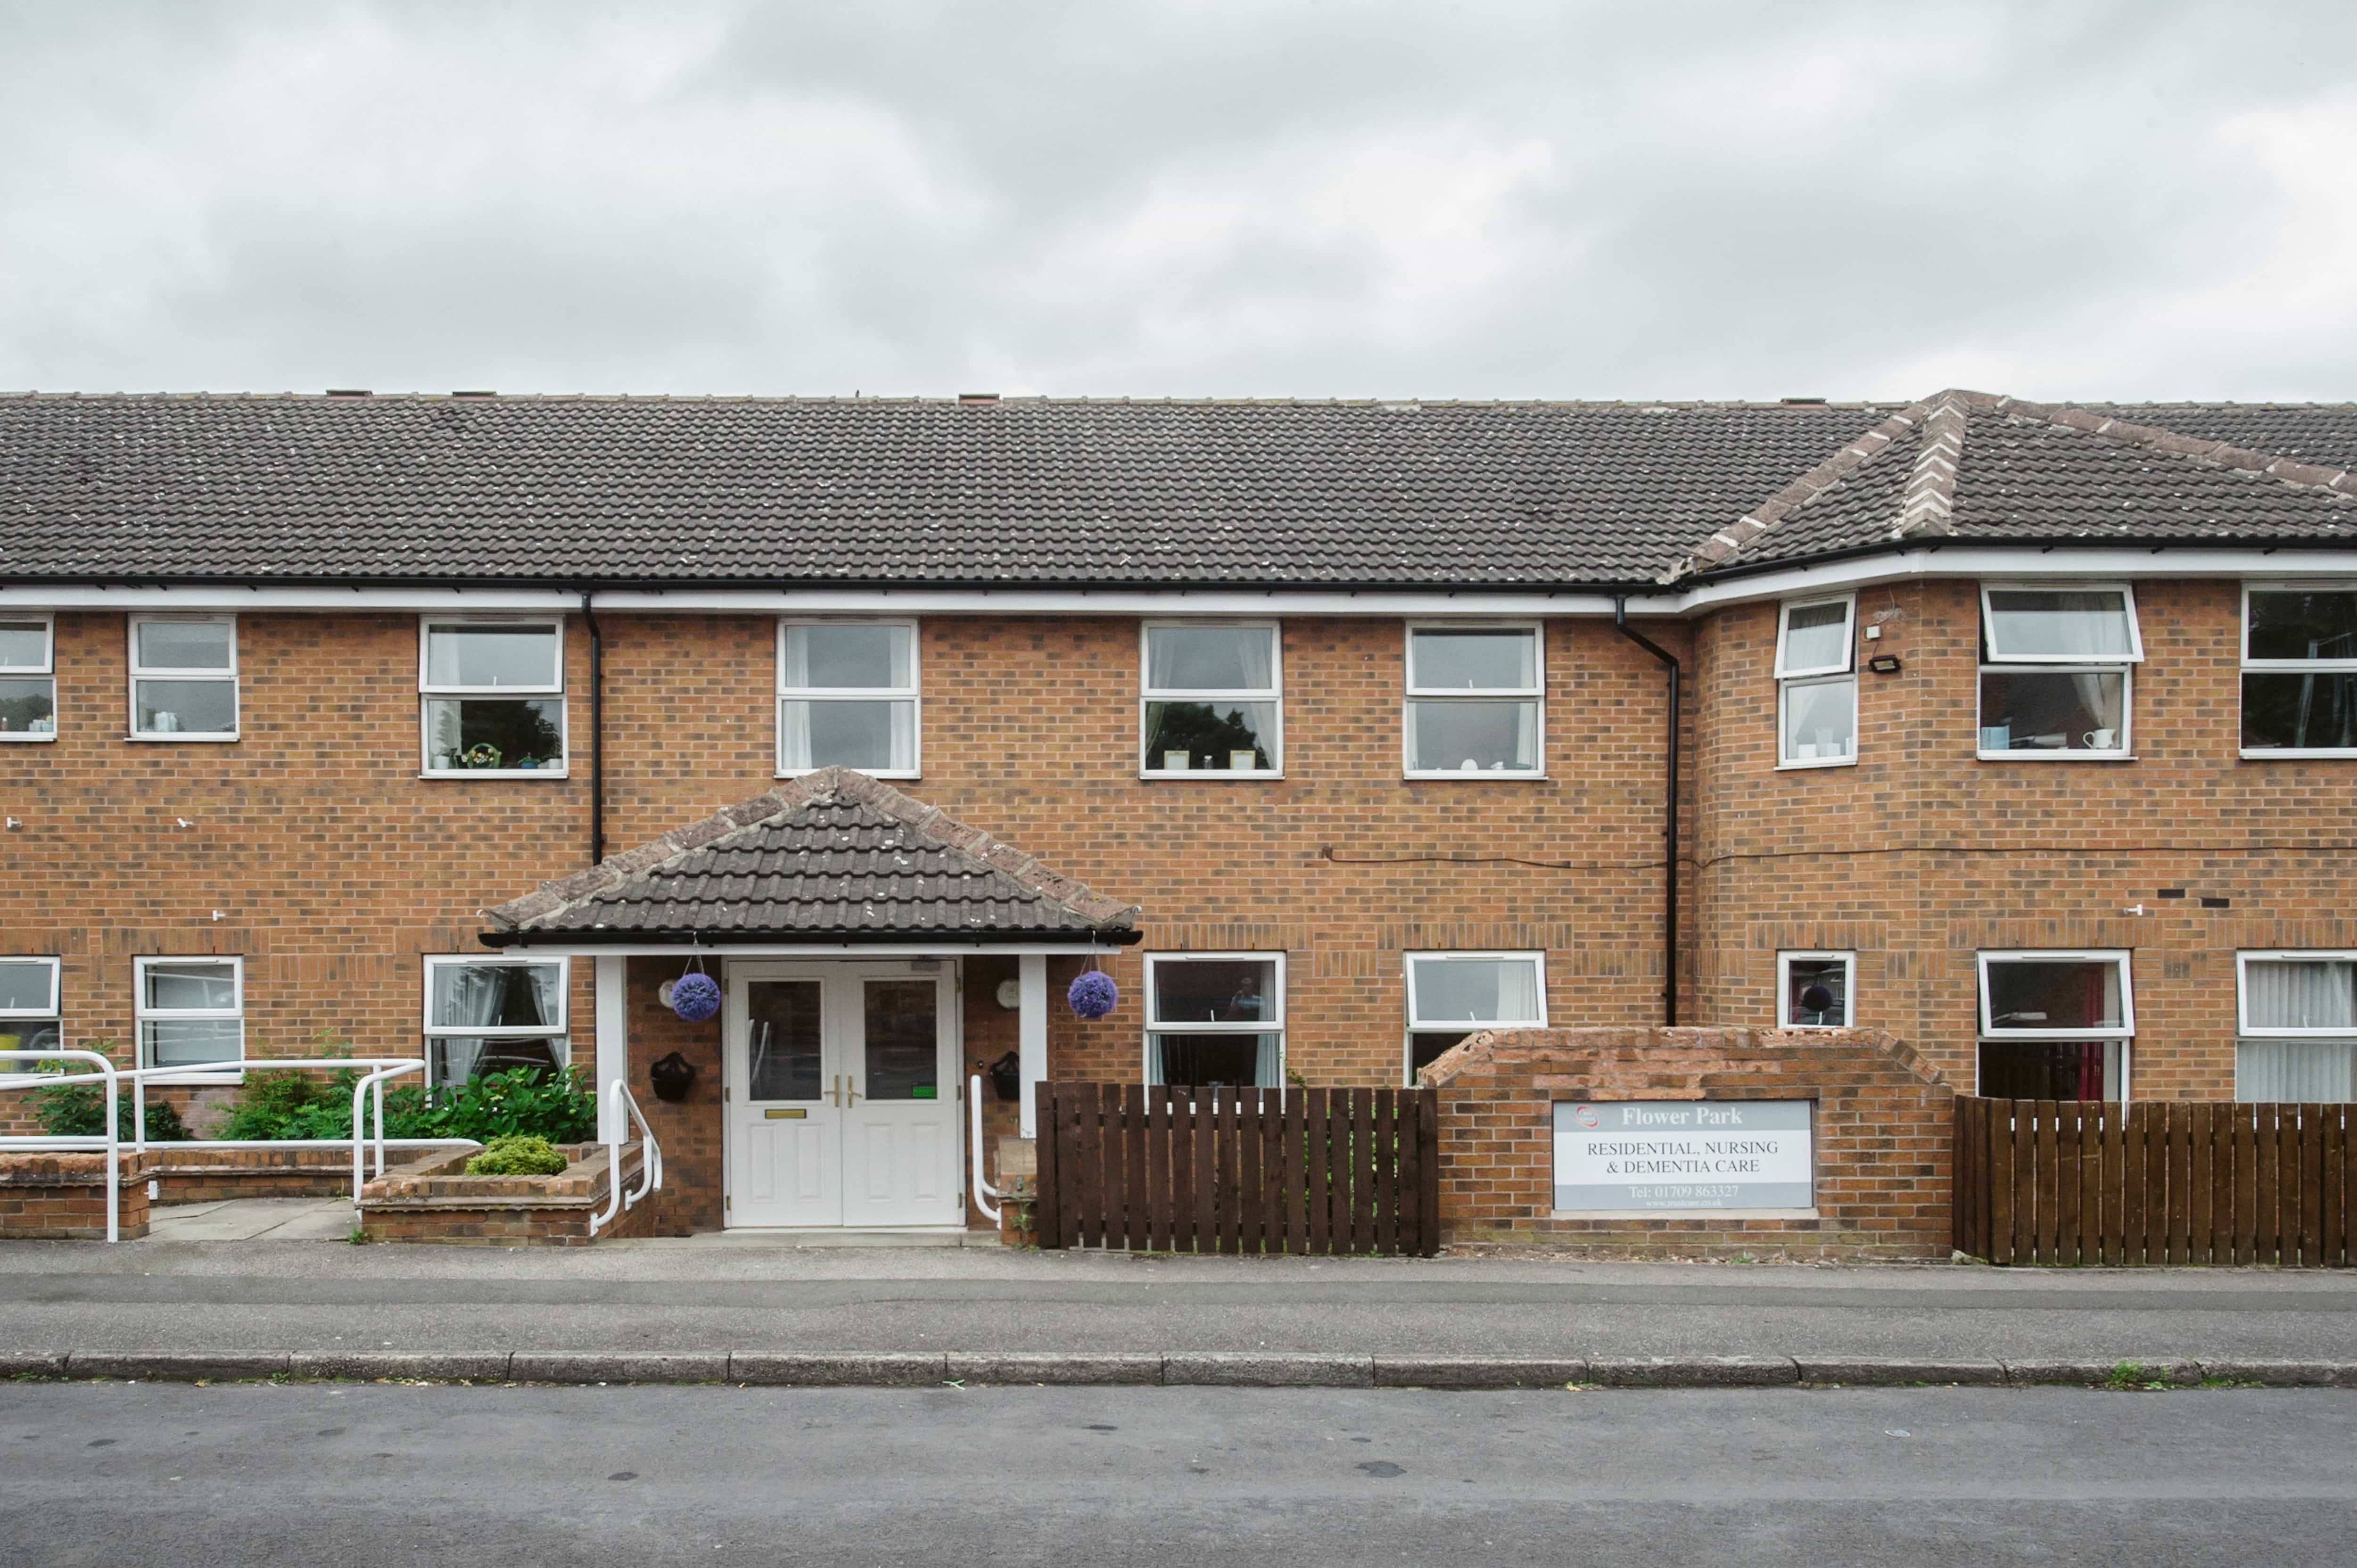 Care home in denaby main